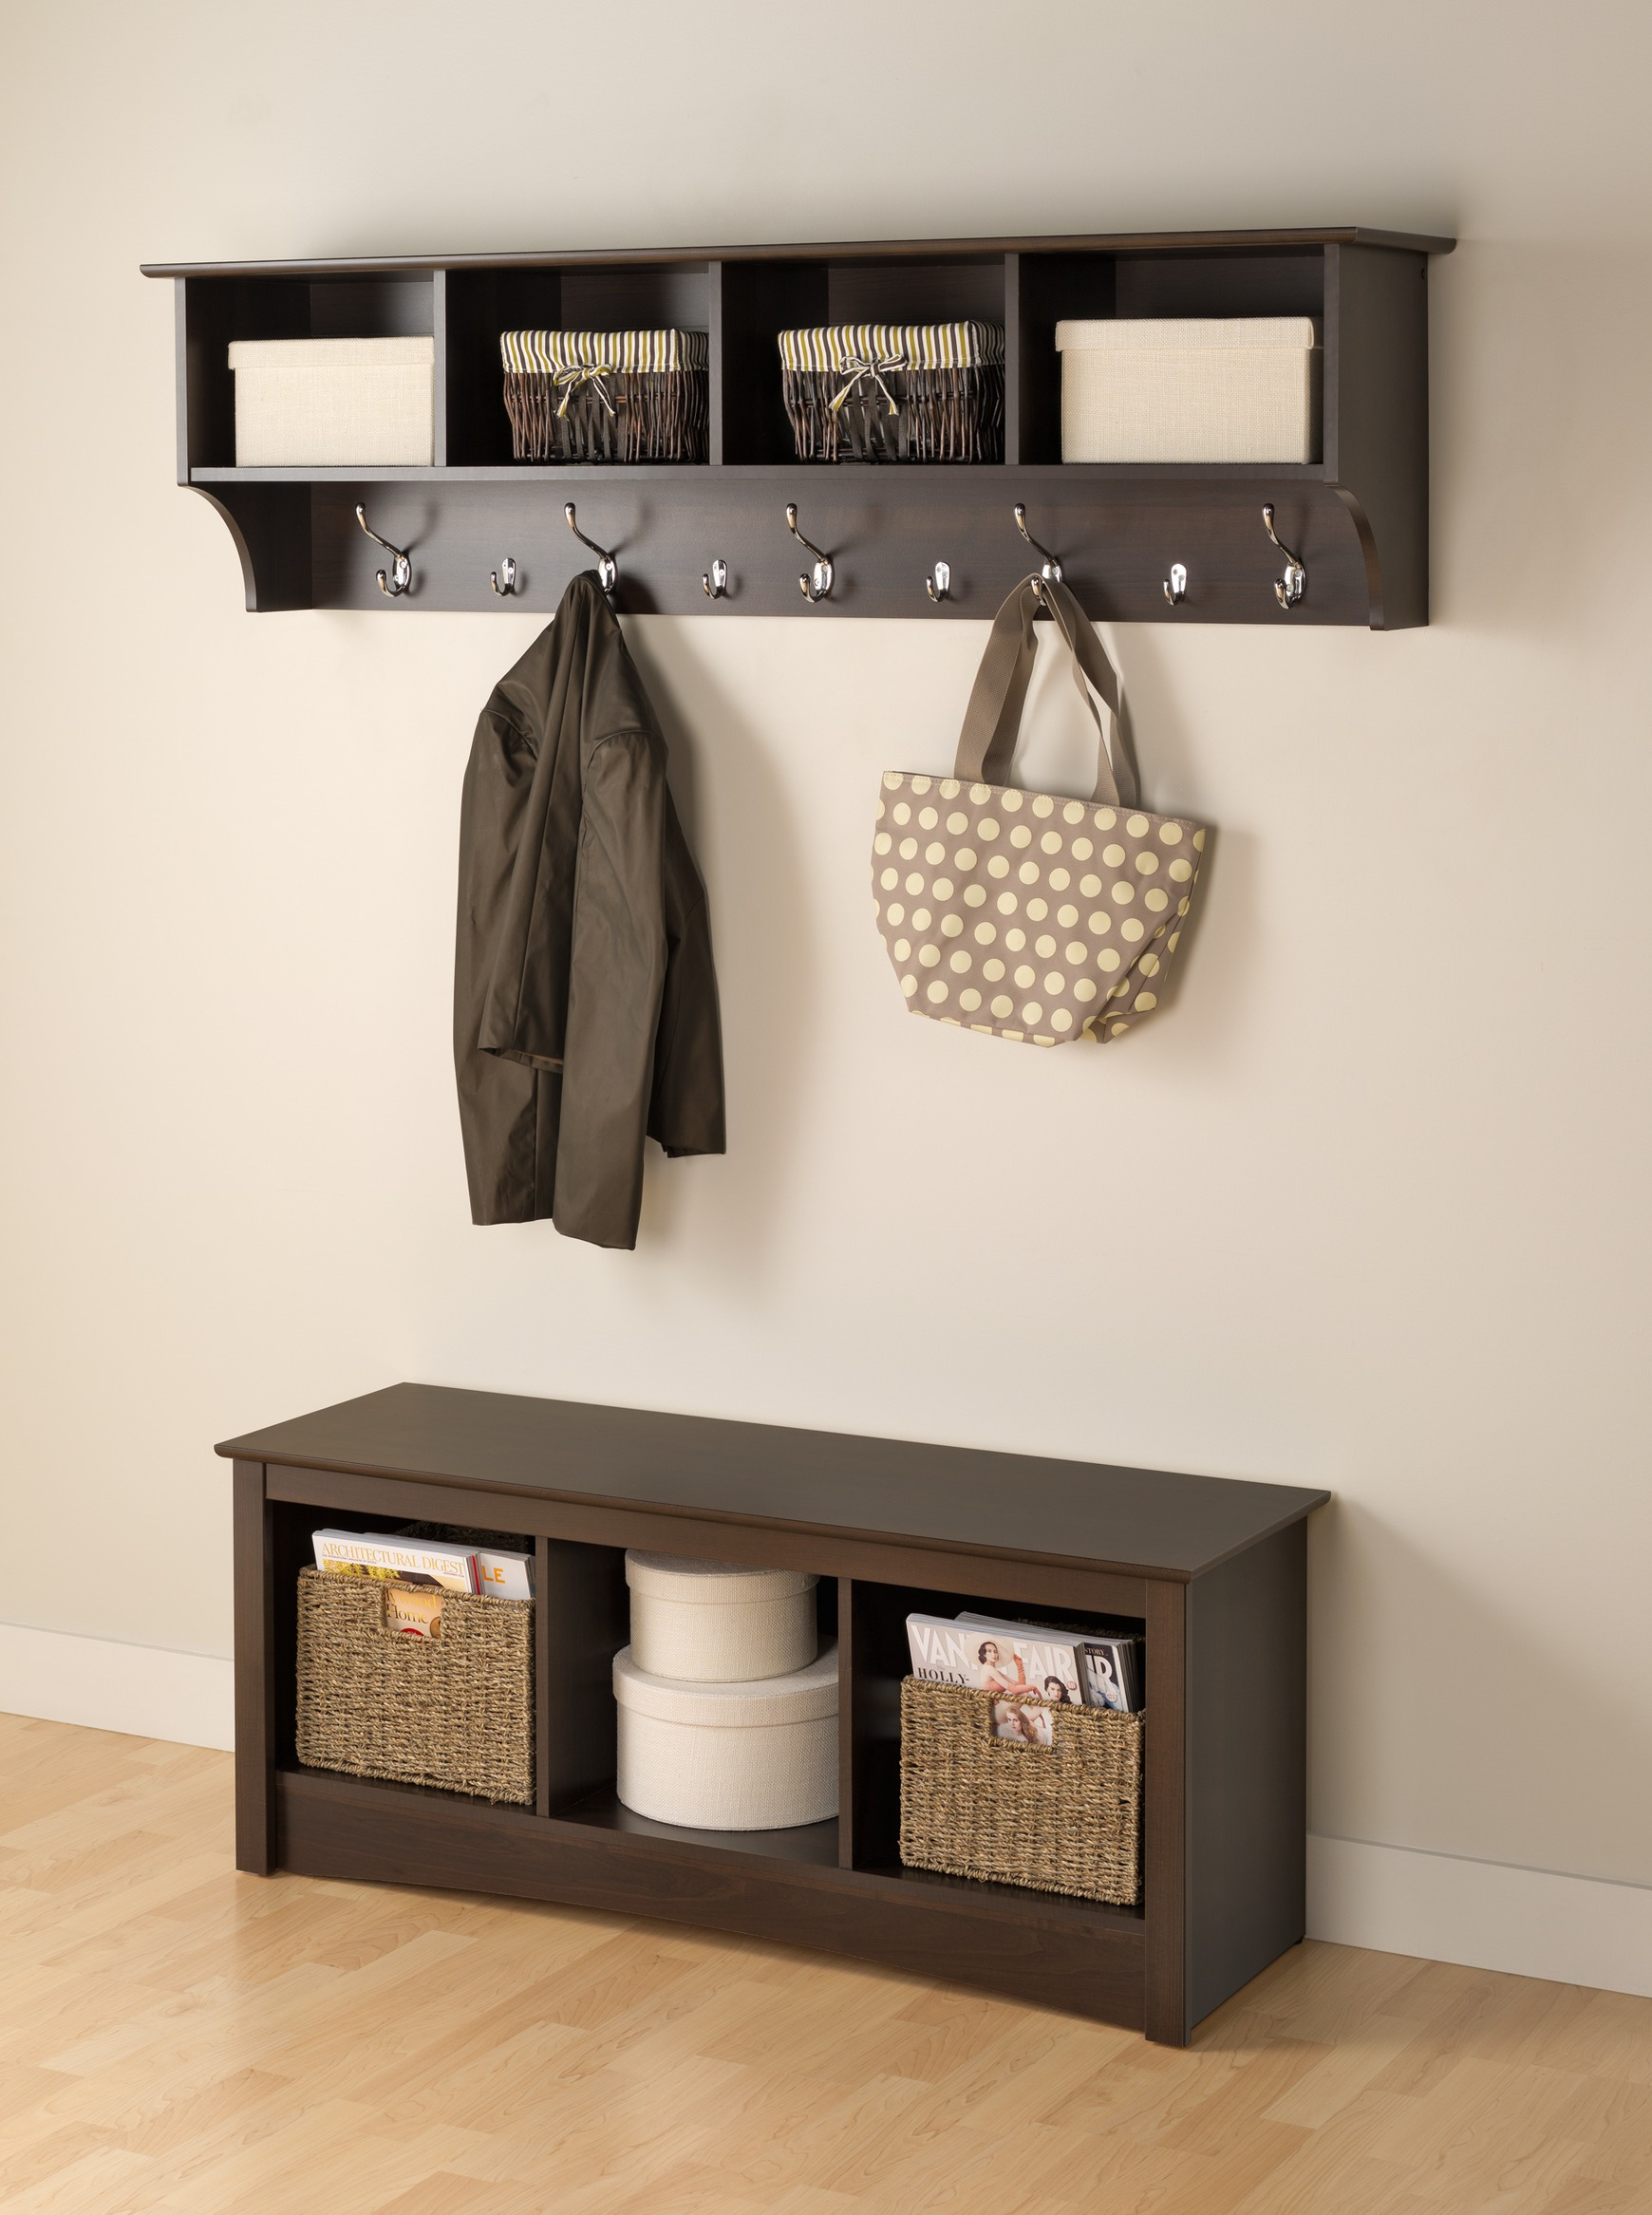 eec_6016_esc_4820_jpg_hanging_entryway_shelf